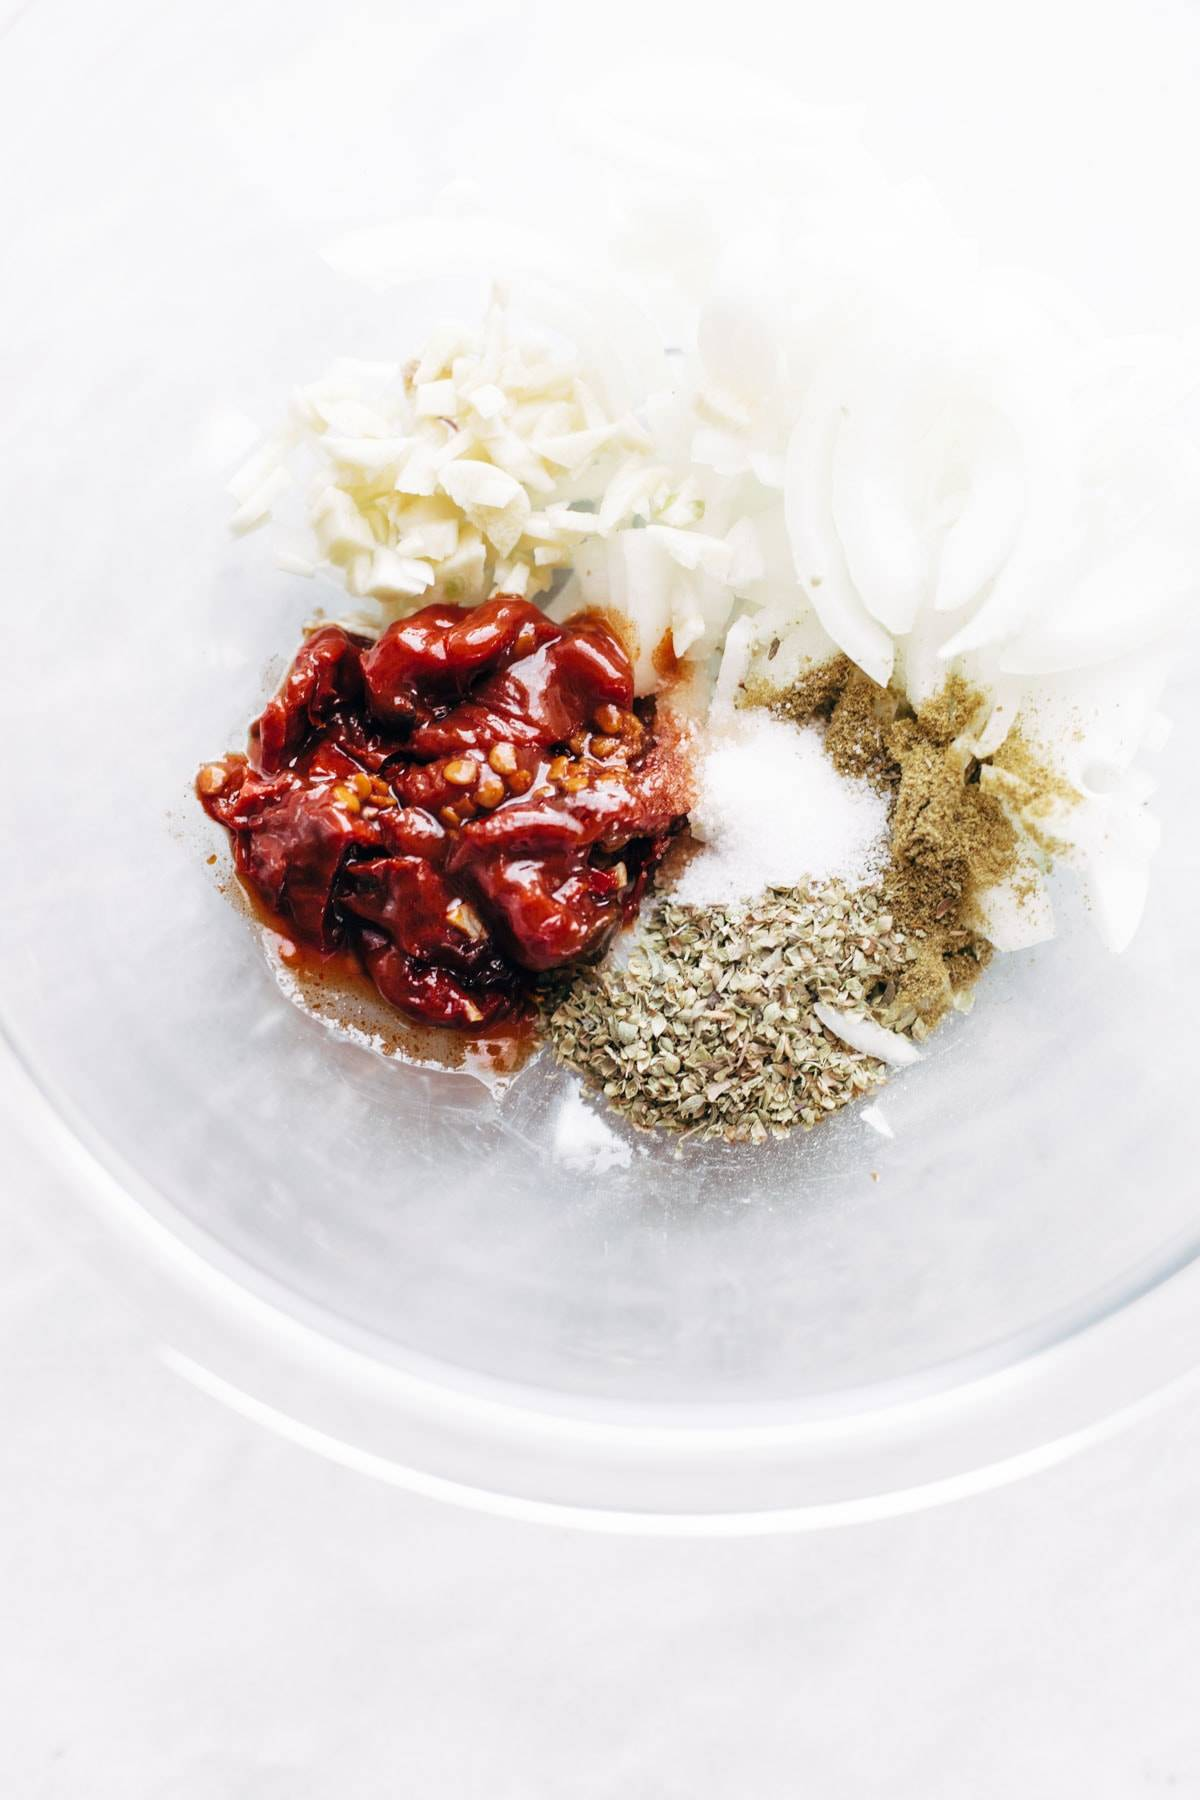 Ingredients for Chicken Tinga Tacos in blender.